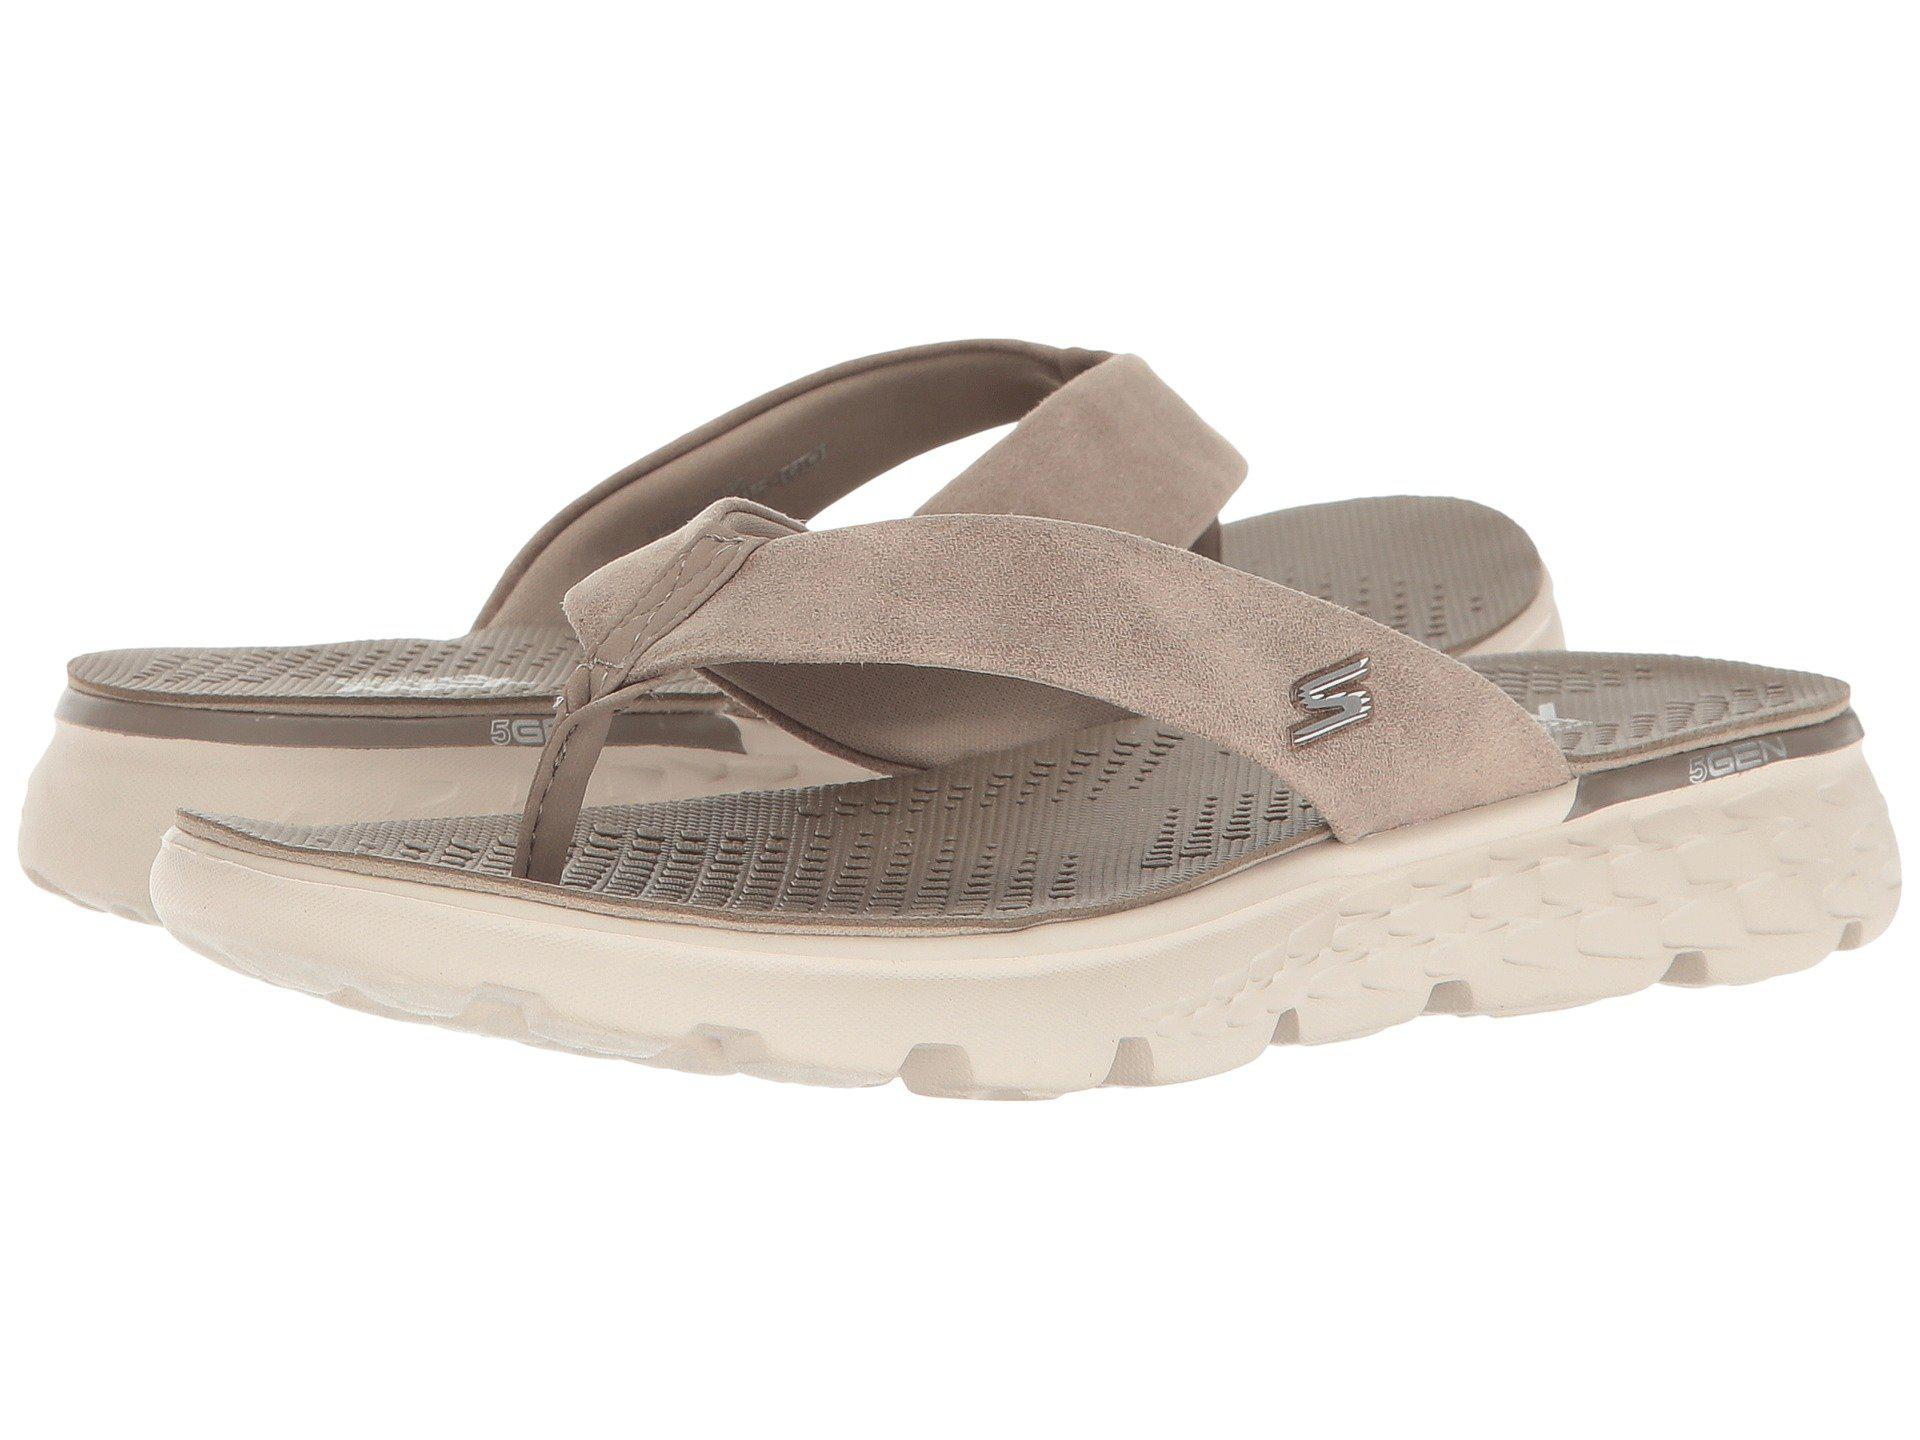 0bd27f32a0a6 Lyst - Skechers On-the-go 400 - Essence (taupe) Women s Sandals